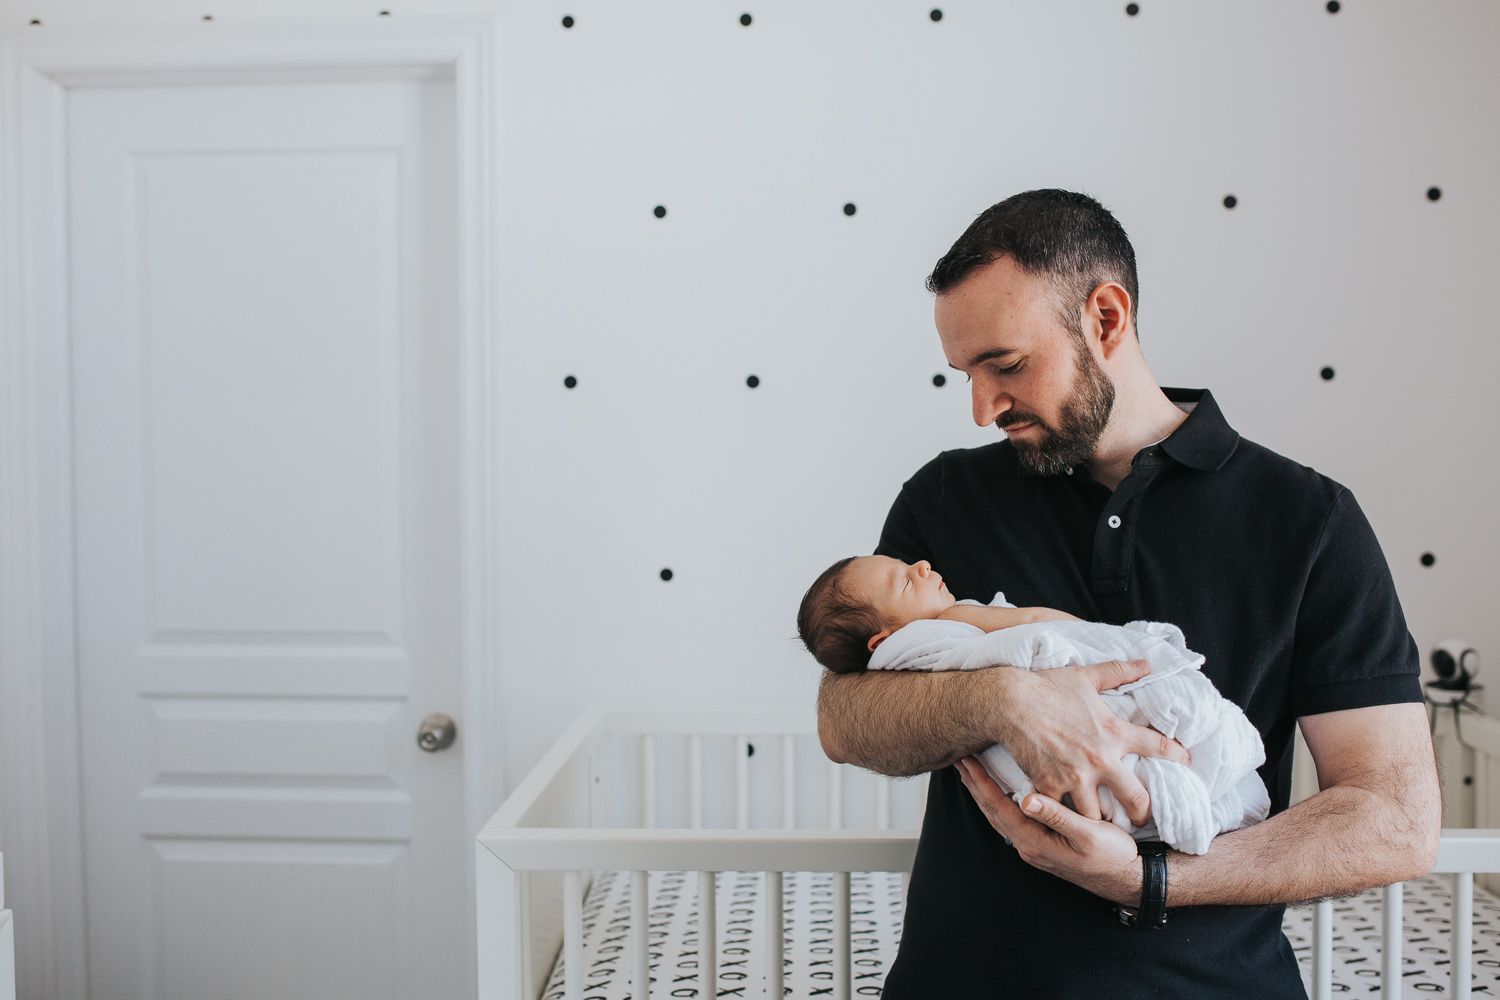 new dad holding and looking at sleeping 2 week old baby boy in nursery - Markham lifestyle photos